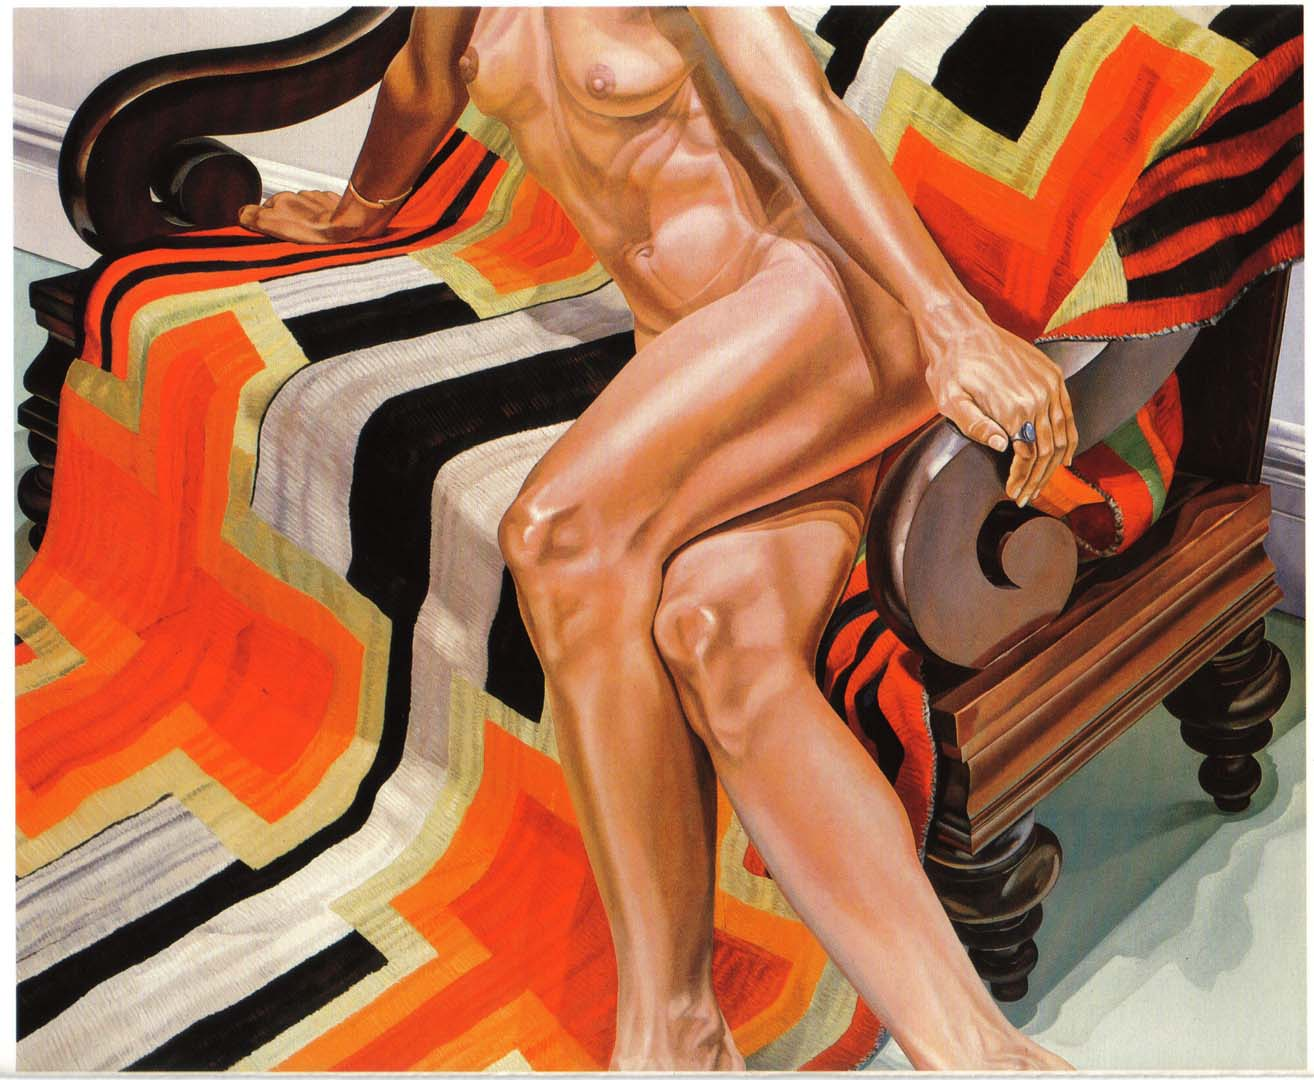 1978 Female Model on Chief's Blanket Oil on Canvas 60 x 72